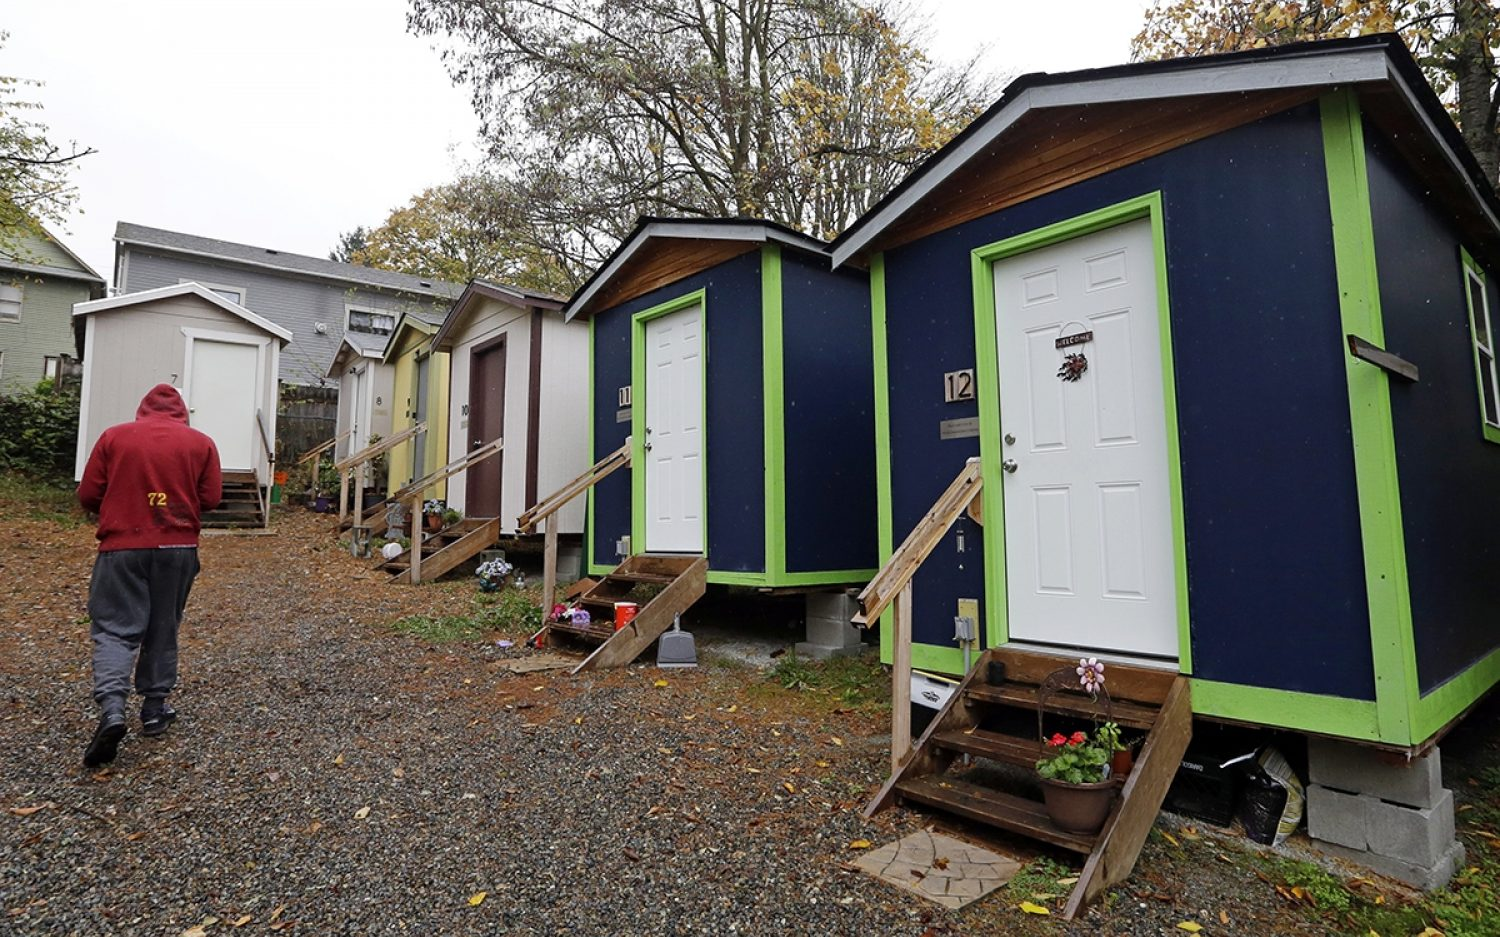 Homeless housing in a hurry